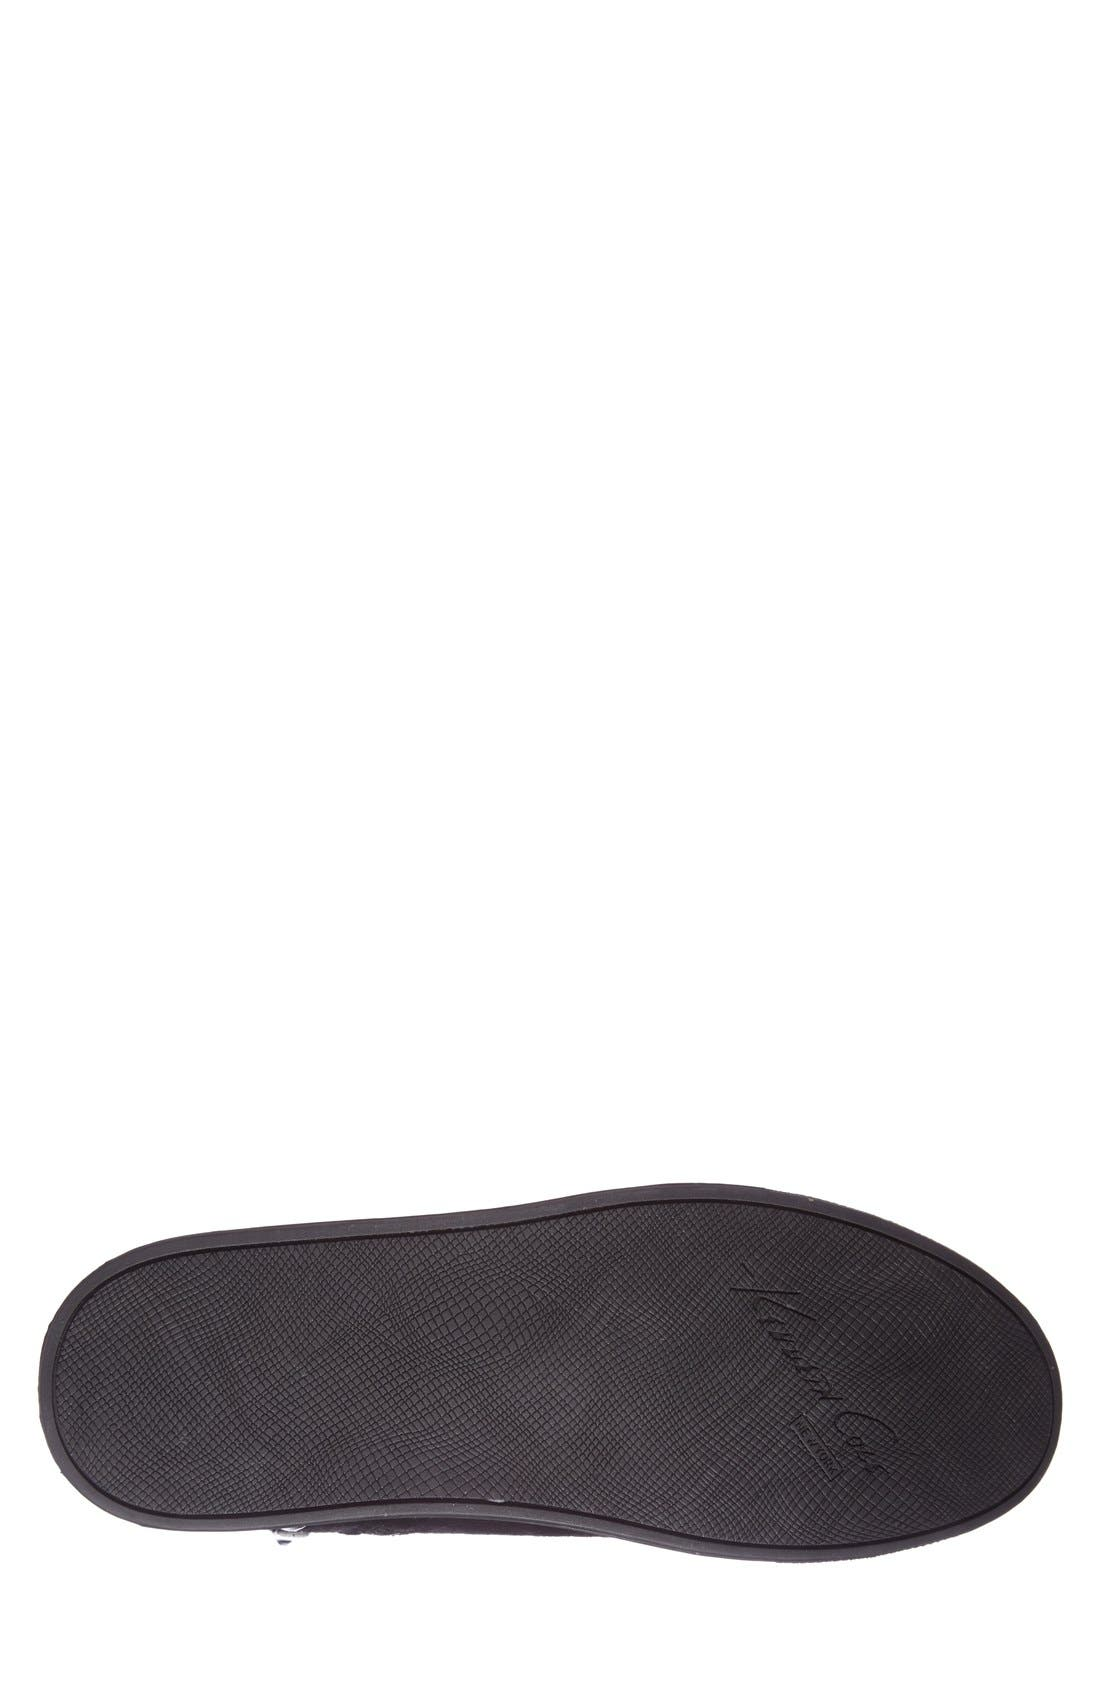 Alternate Image 4  - Kenneth Cole New York 'Double Over' ZipHigh Top Sneaker (Men)